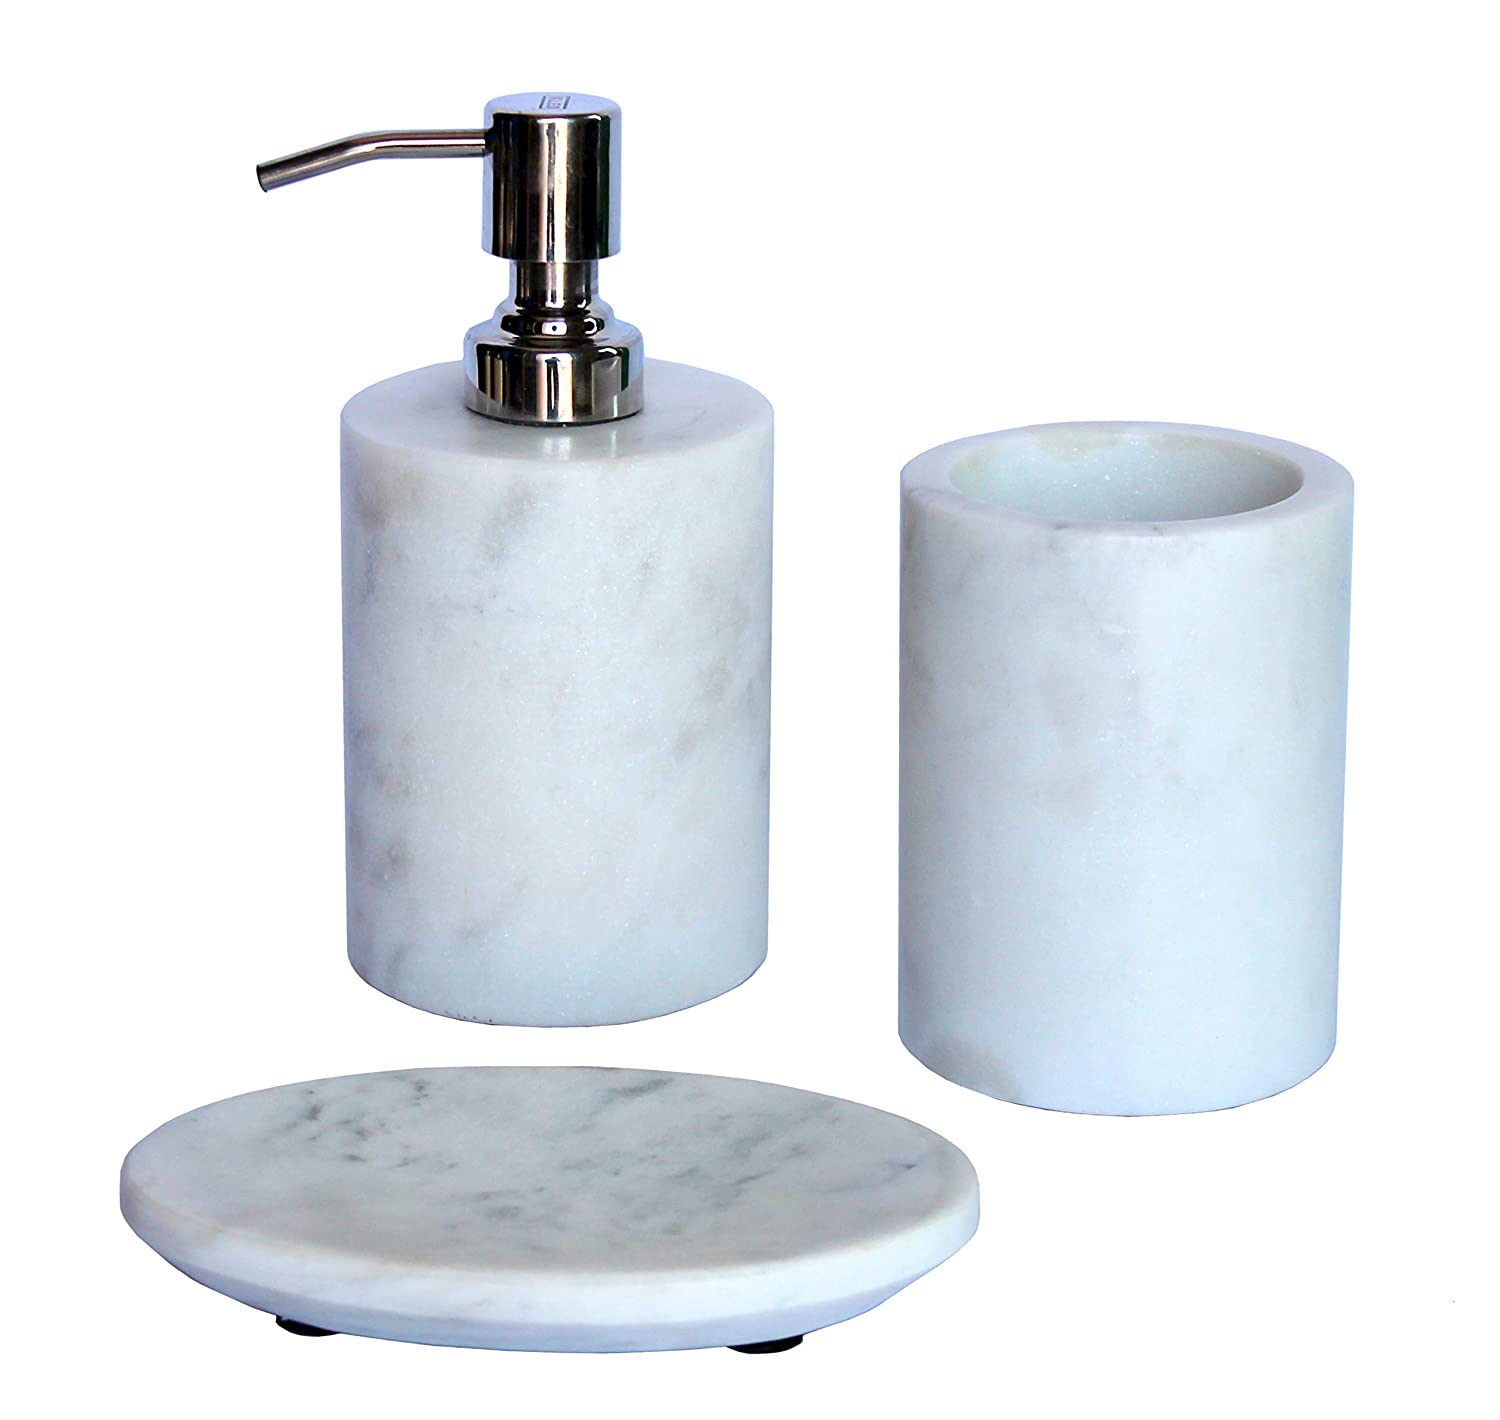 Bathroom Accessories.Kleo Bathroom Accessory Set Made From Natural Stone Bath Accessories Set Includes Soap Dispenser Toothbrush Holder Soap Dish White Set Of 3